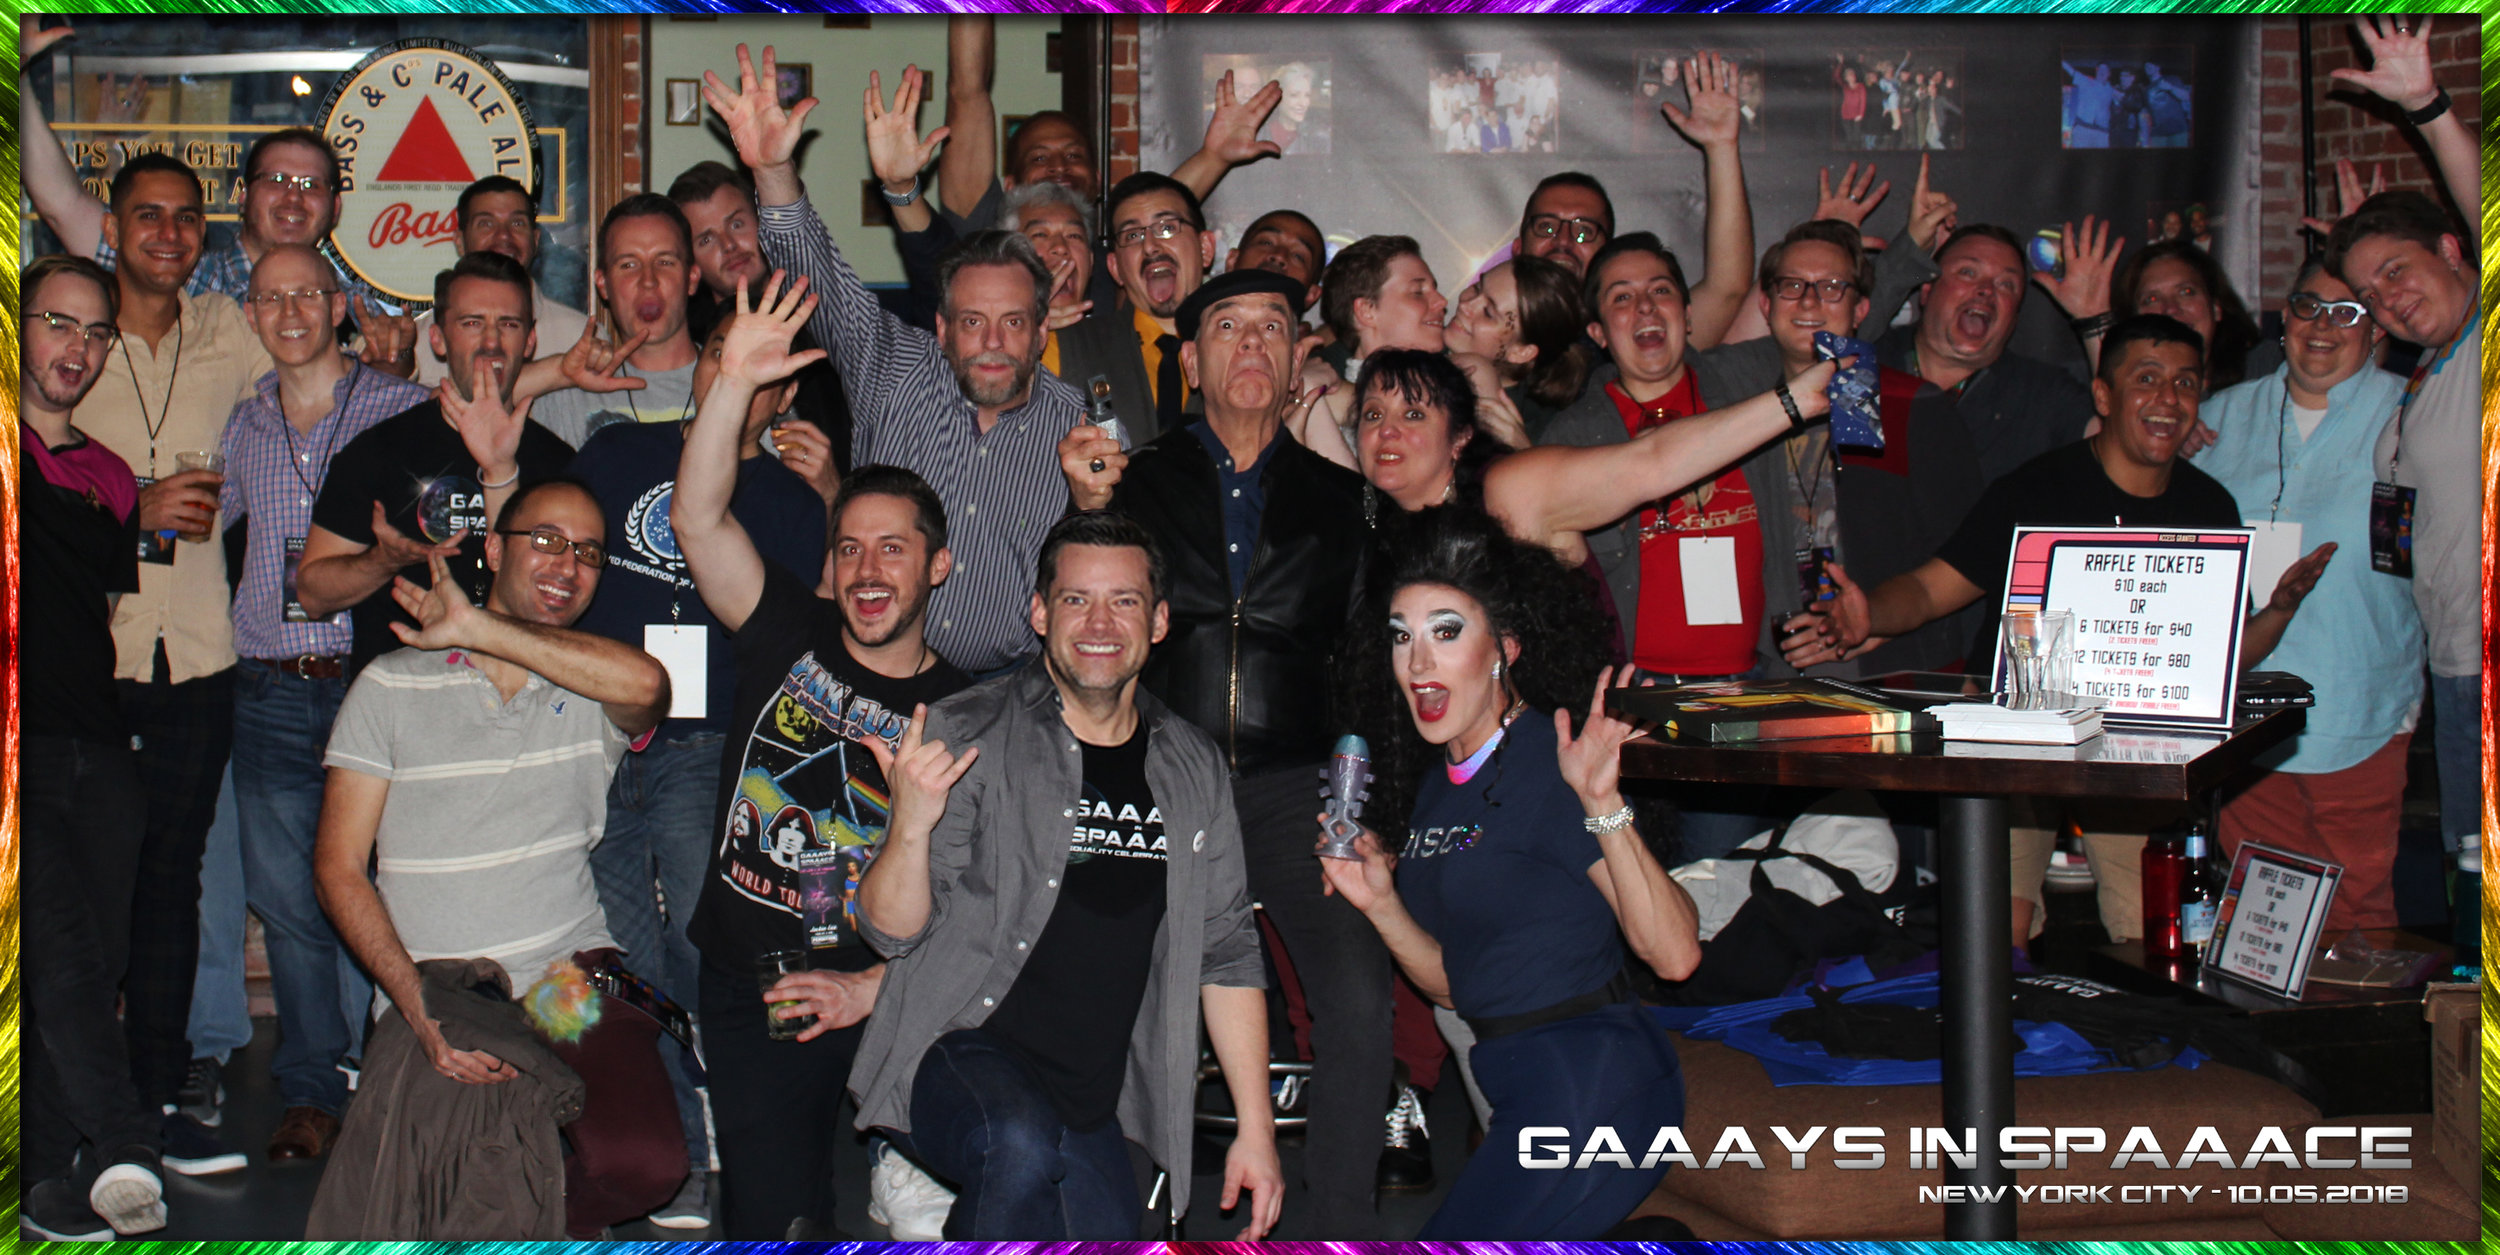 GIS-NYC-10-05-2018-EXTRA-WIDE-GROUP-PHOTO-SILLY-2.jpg